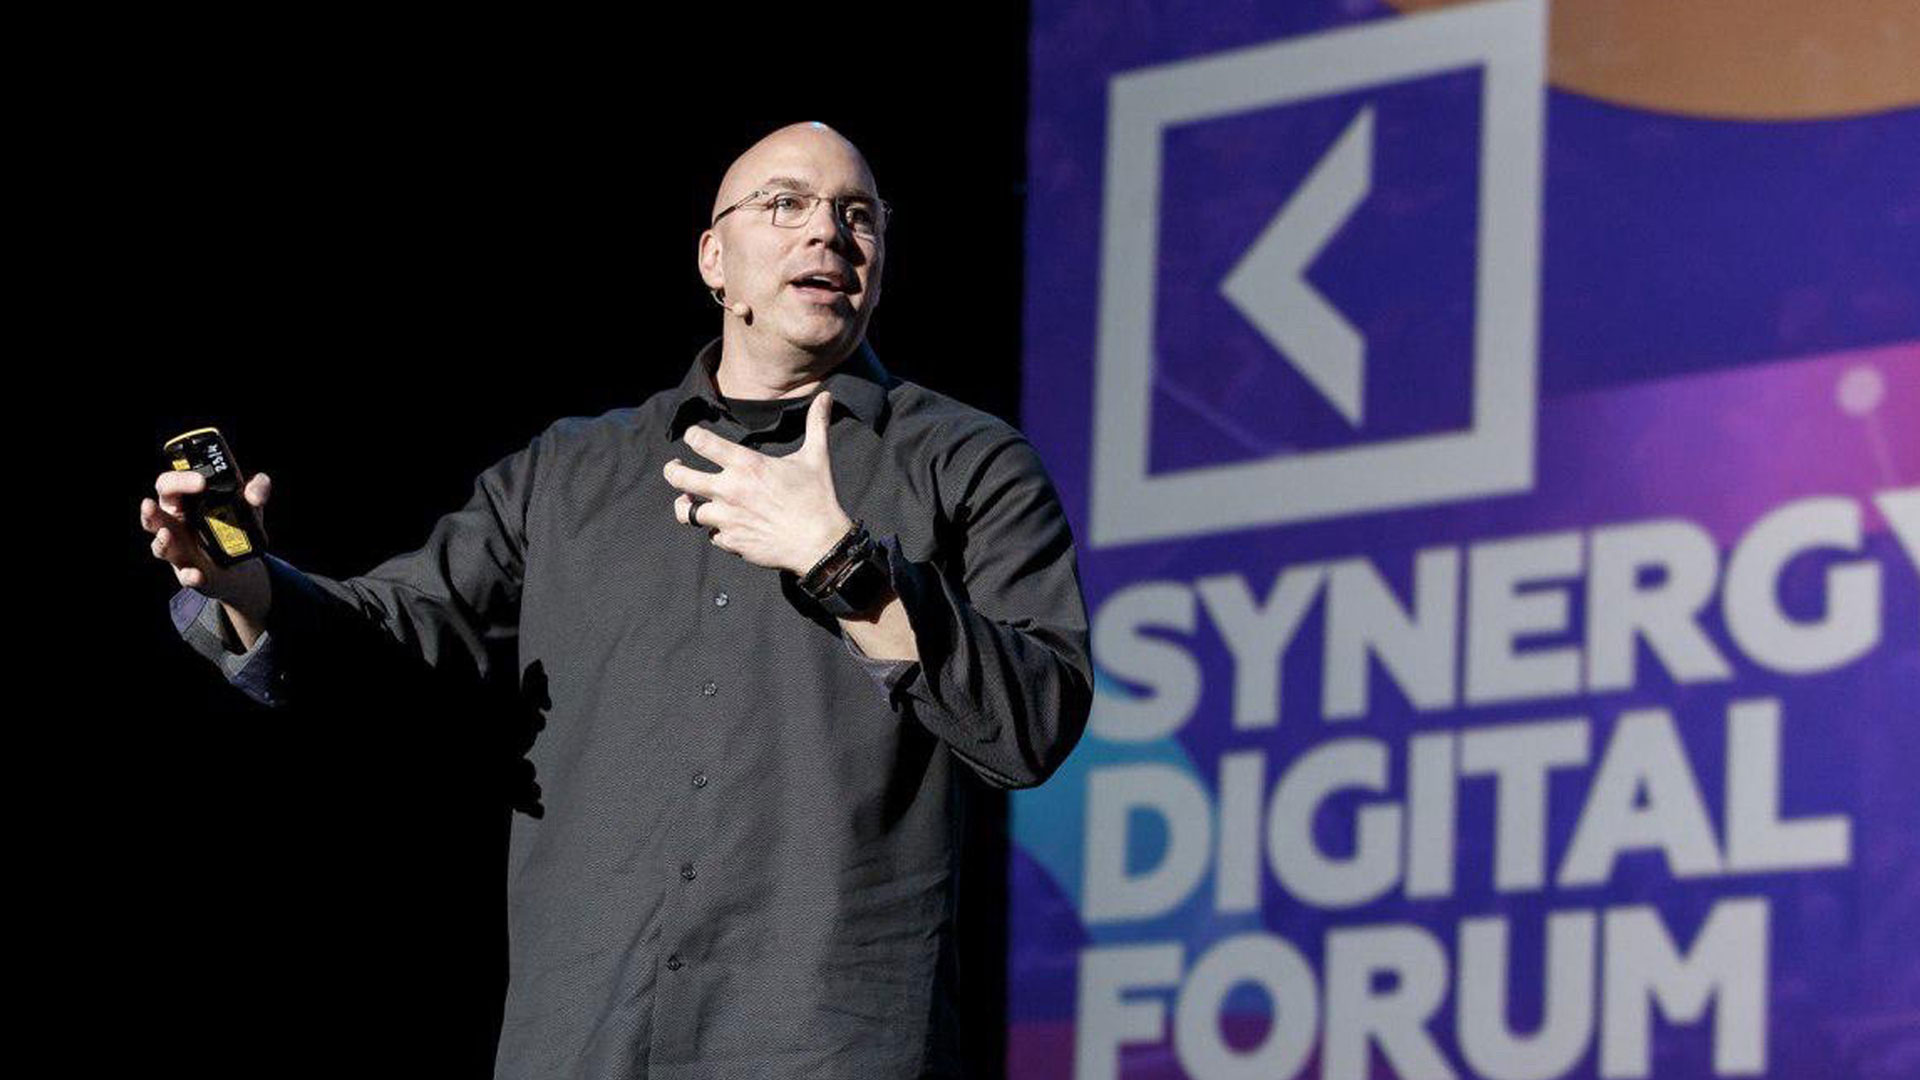 Speaking at Synergy Digital Forum 2019, Moscow, Russia